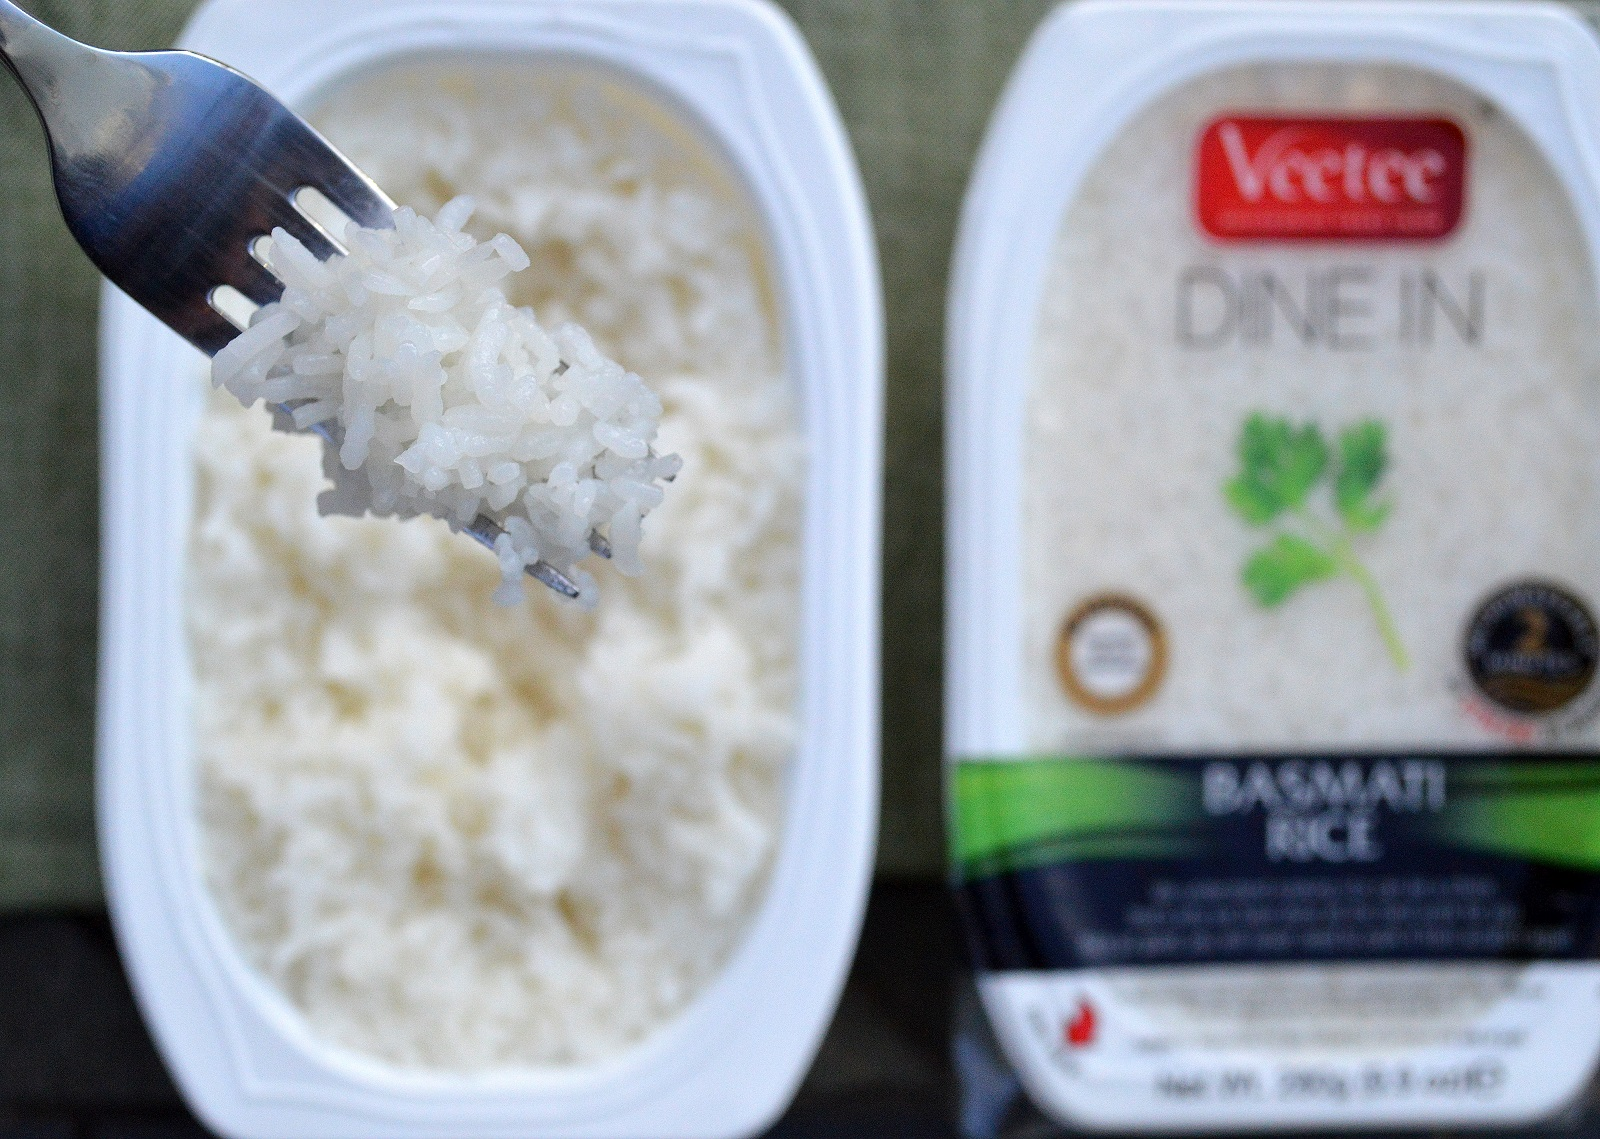 Veetee Rice - Ready in 2 minutes!